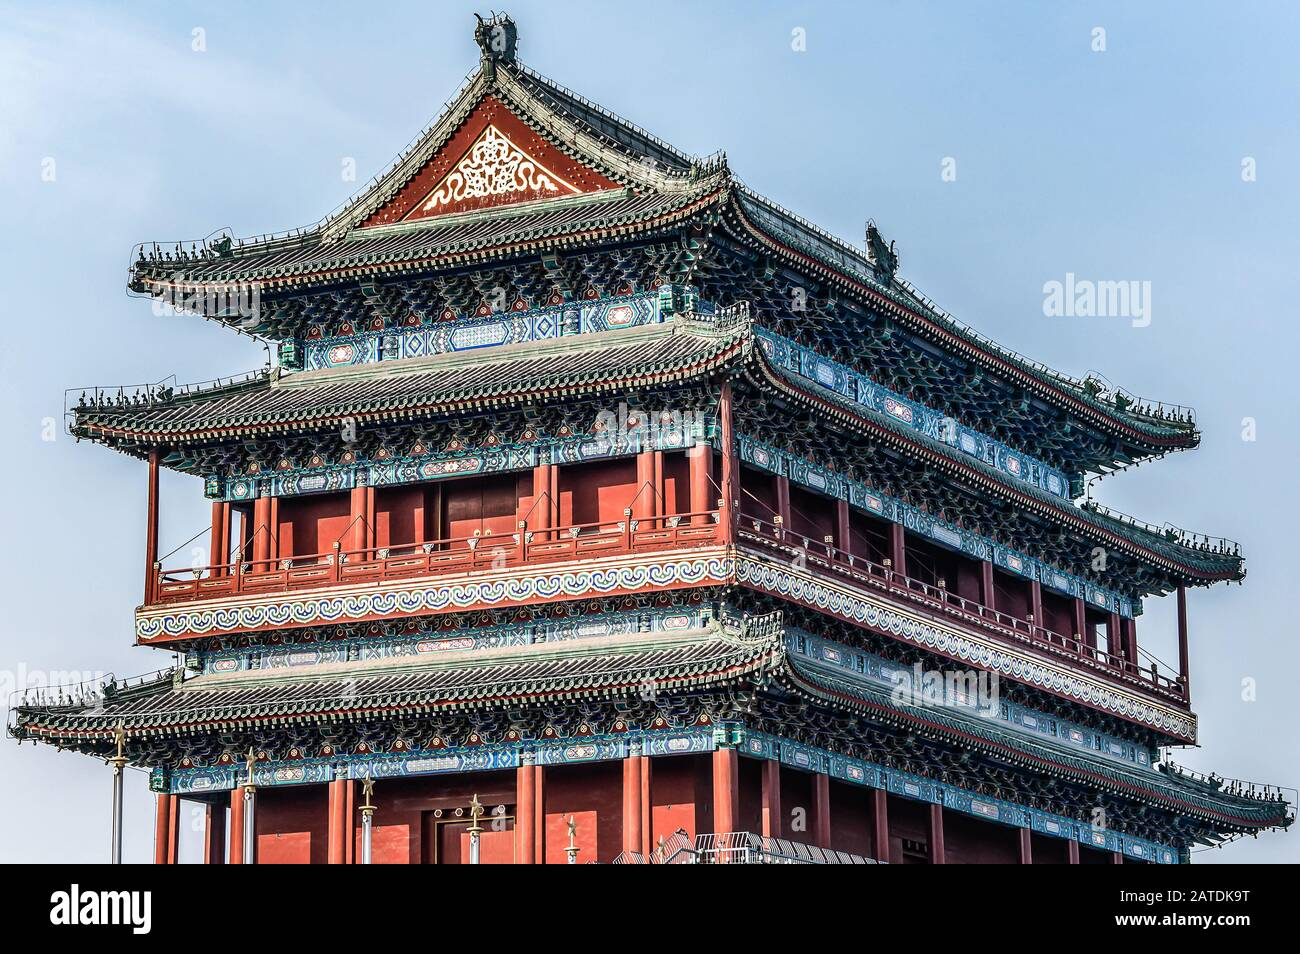 China, Beijing, Forbidden City Different design elements of the colorful buildings of the imperial palace. Stock Photo